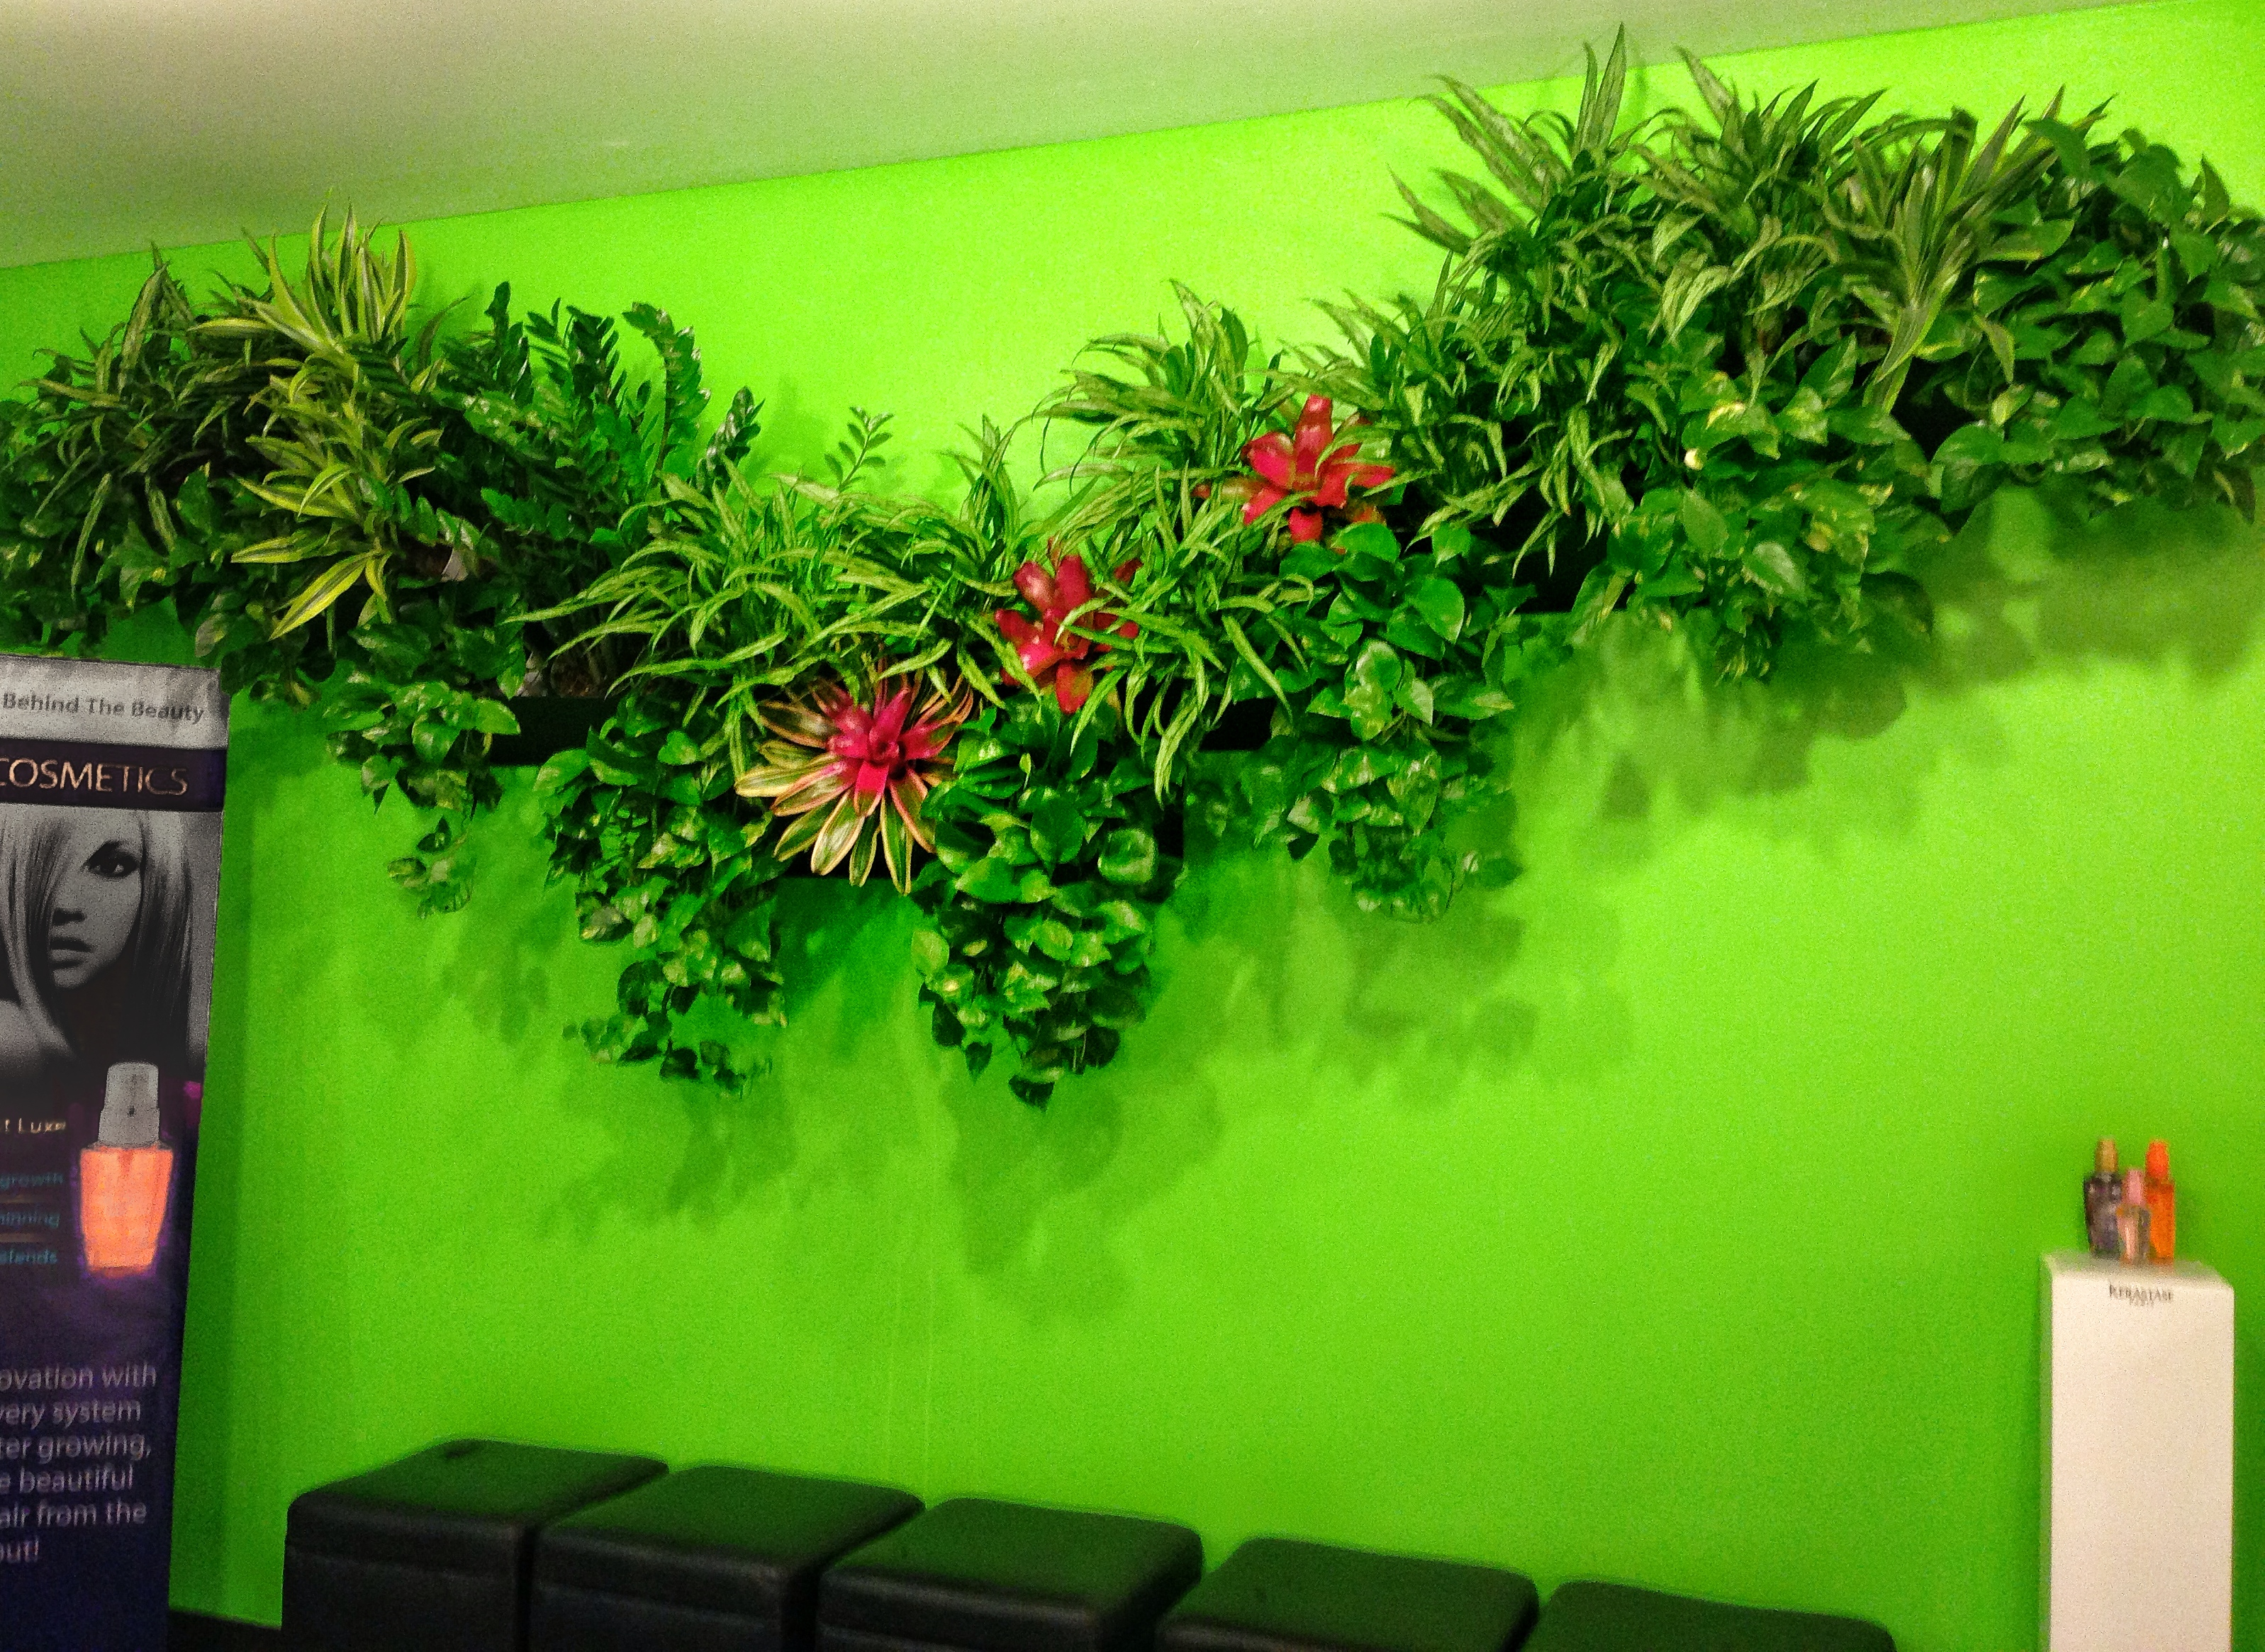 plant design Our exterior and interior plant design specialists are always on had to create  beautiful plant displays for your workspace.